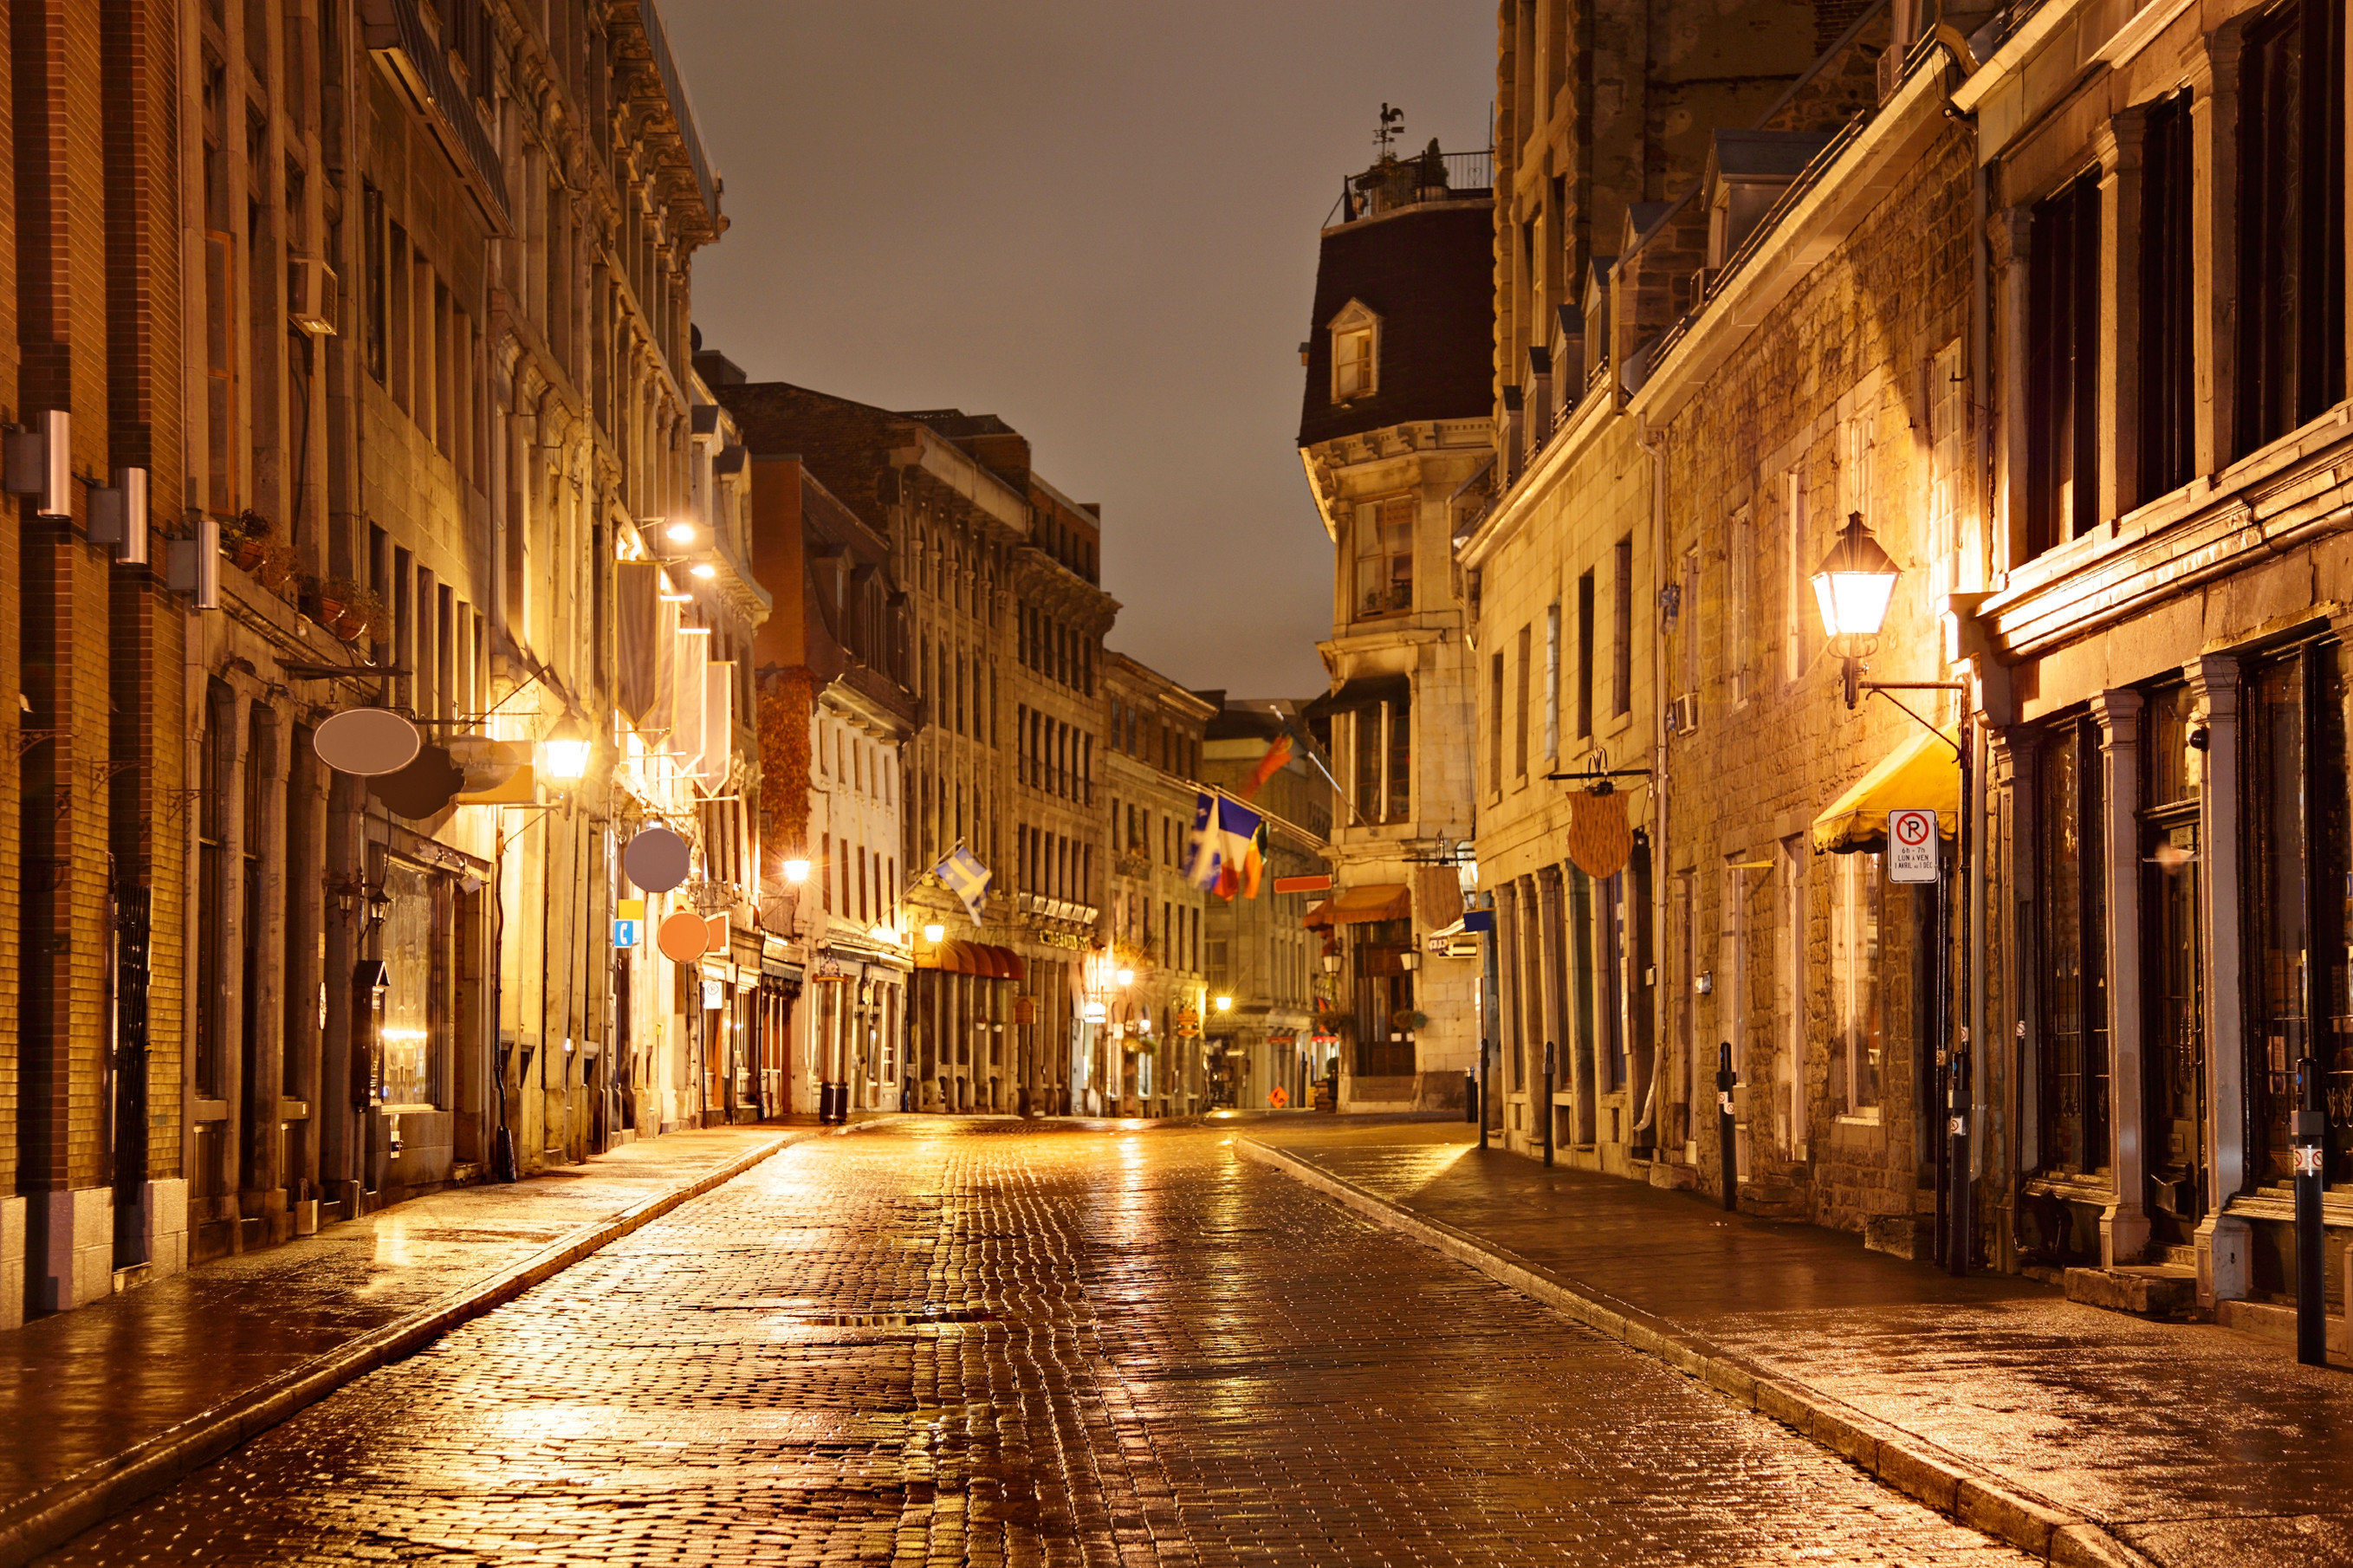 Architecture Buildings Canada Exterior Hotels Montreal Nightlife Trip Ideas building way ground road scene sidewalk street alley night Town rain City light evening neighbourhood lane cityscape infrastructure lighting rainy Downtown nonbuilding structure